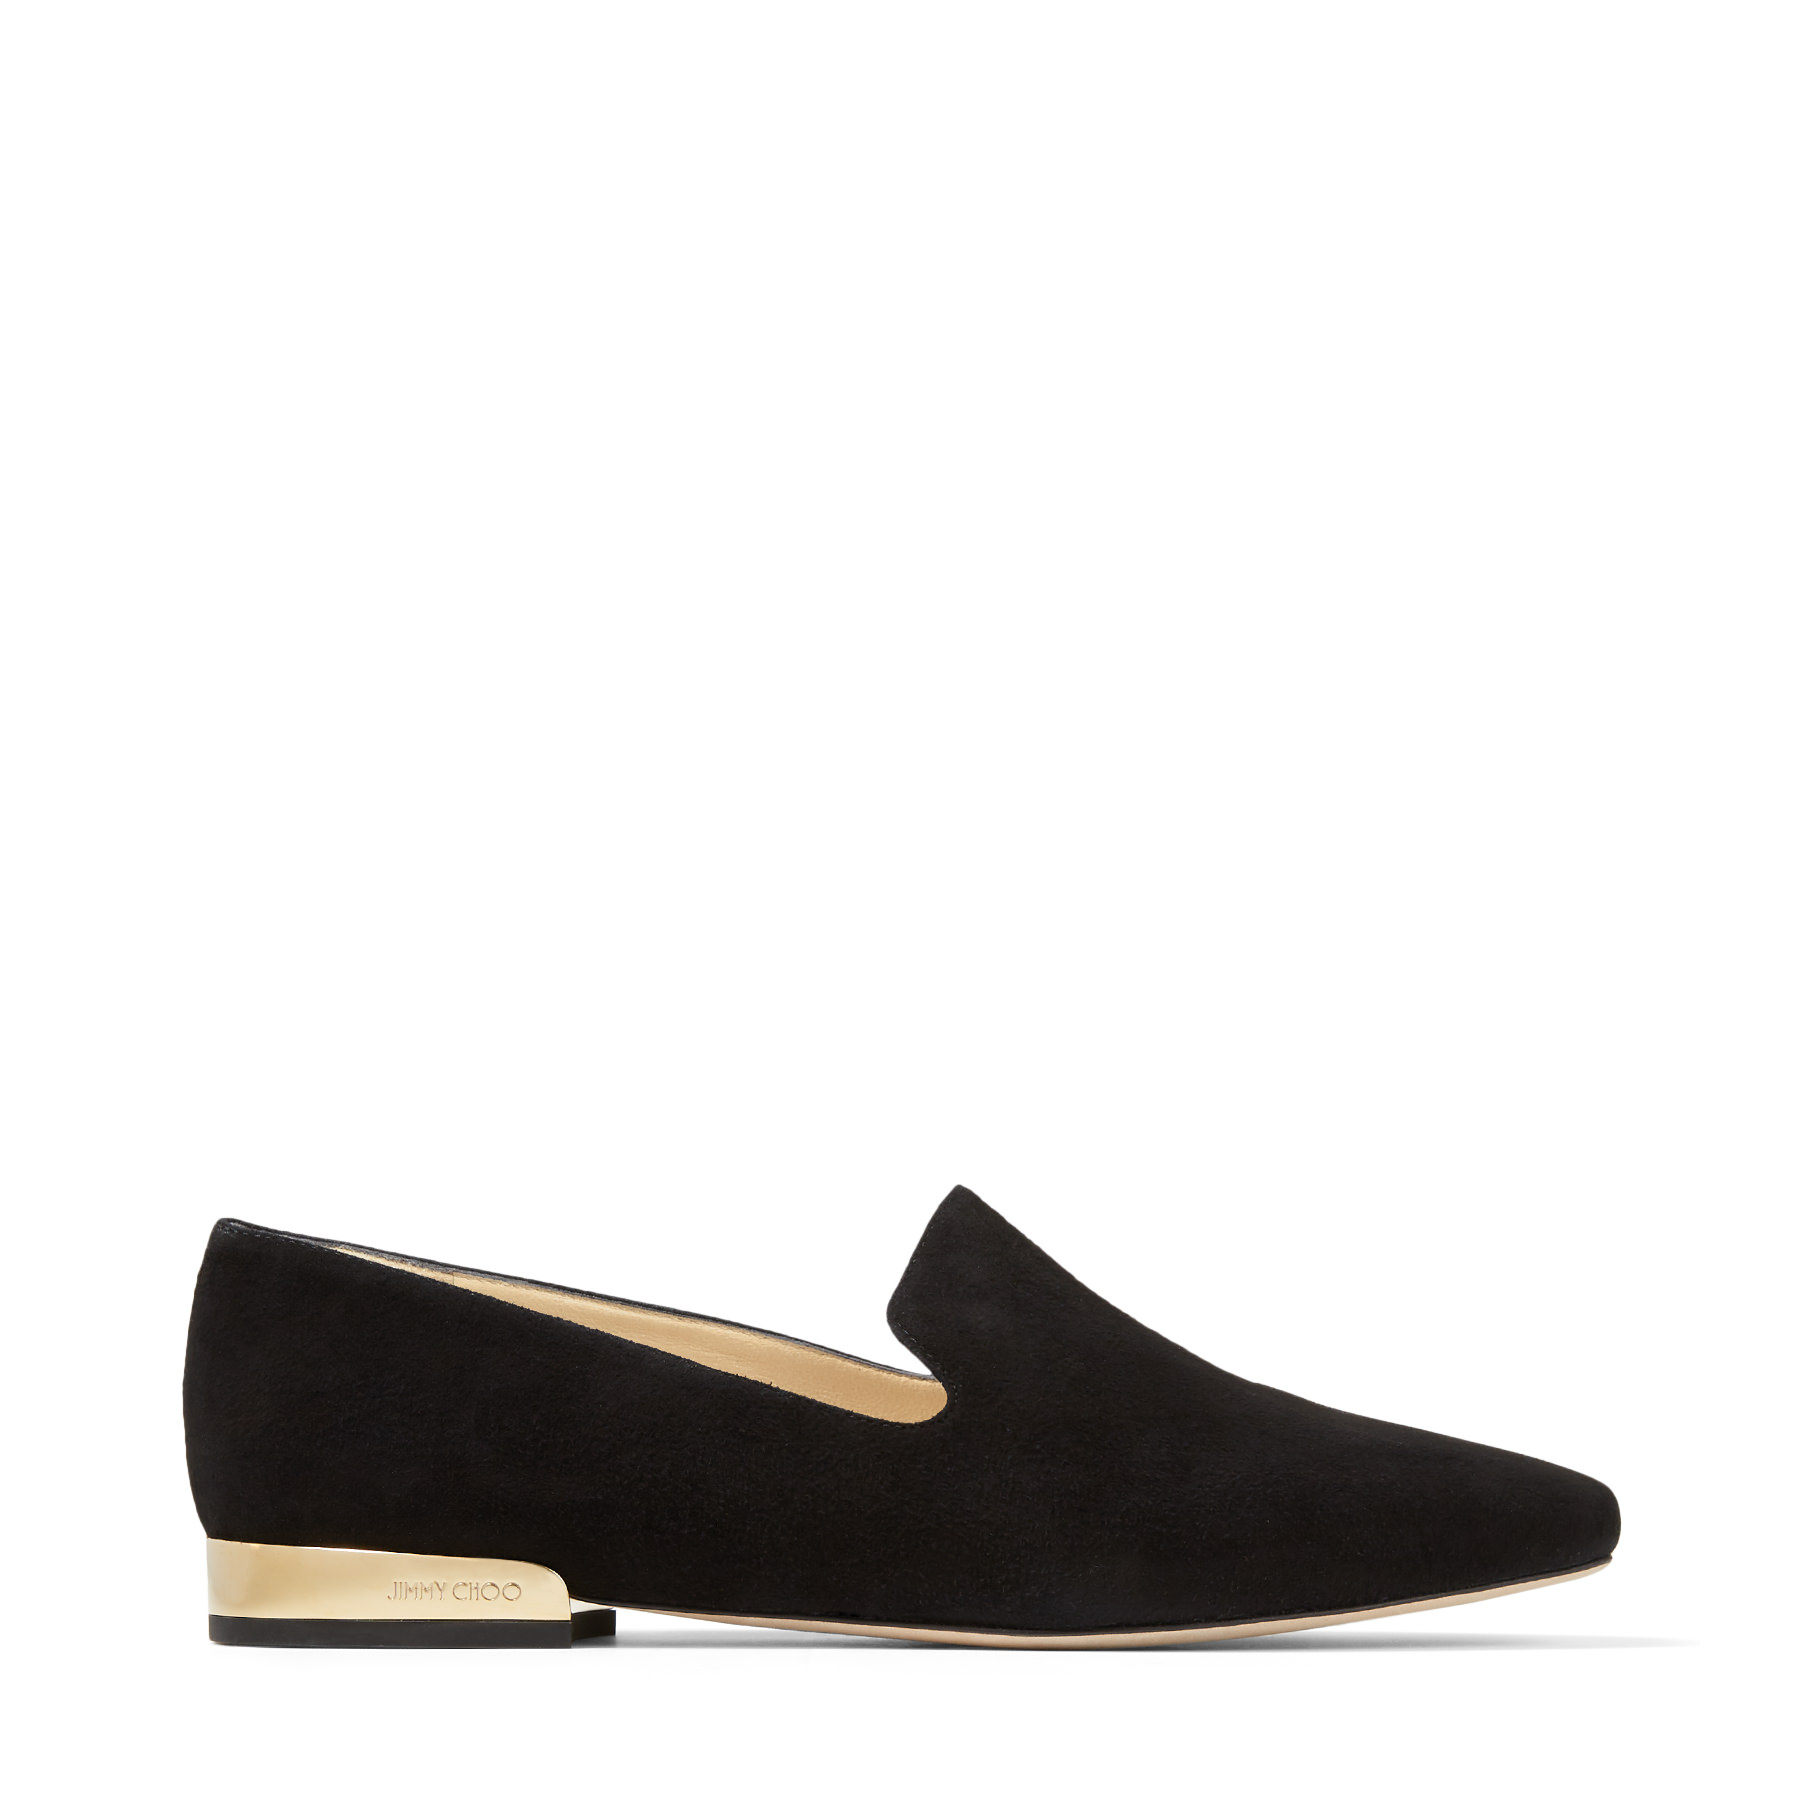 JAIDA FLAT Black Suede Square Toe Slippers by Jimmy Choo